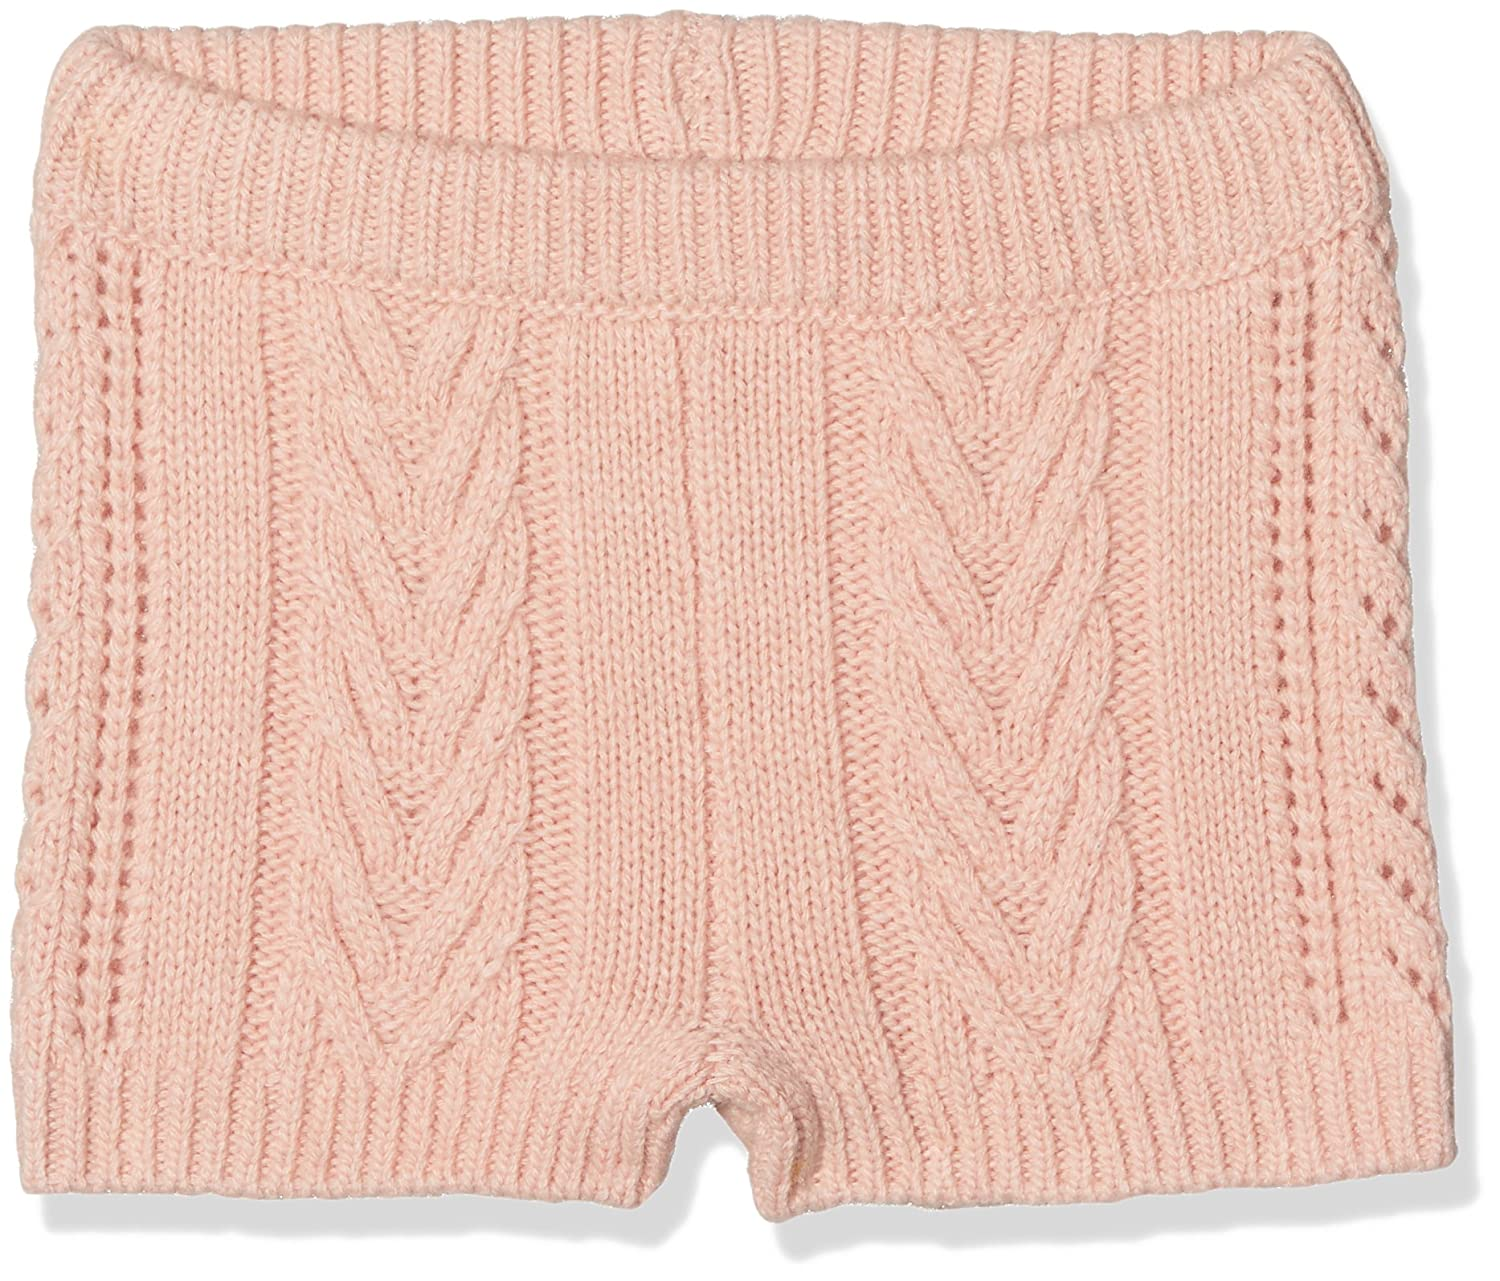 Noa Noa Baby Girls' Basic Wool Knit Shorts 2-3956-1